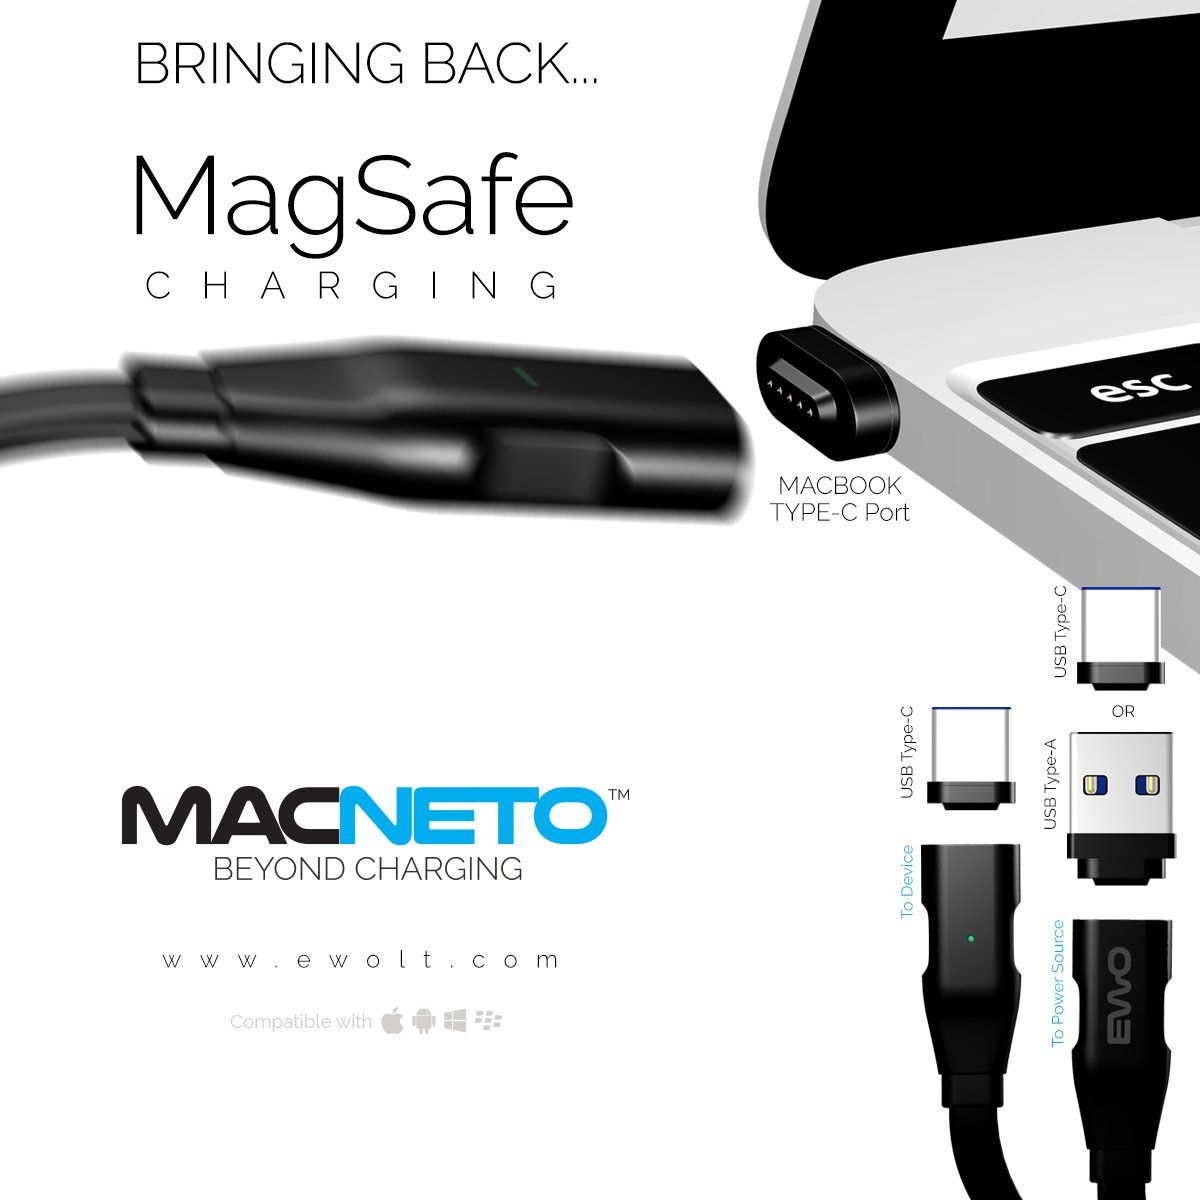 MACNETO Bringing Back MagSafe Charging A Magnetic Power Cable - Clever magnetic wall clock charges phone wirelessly